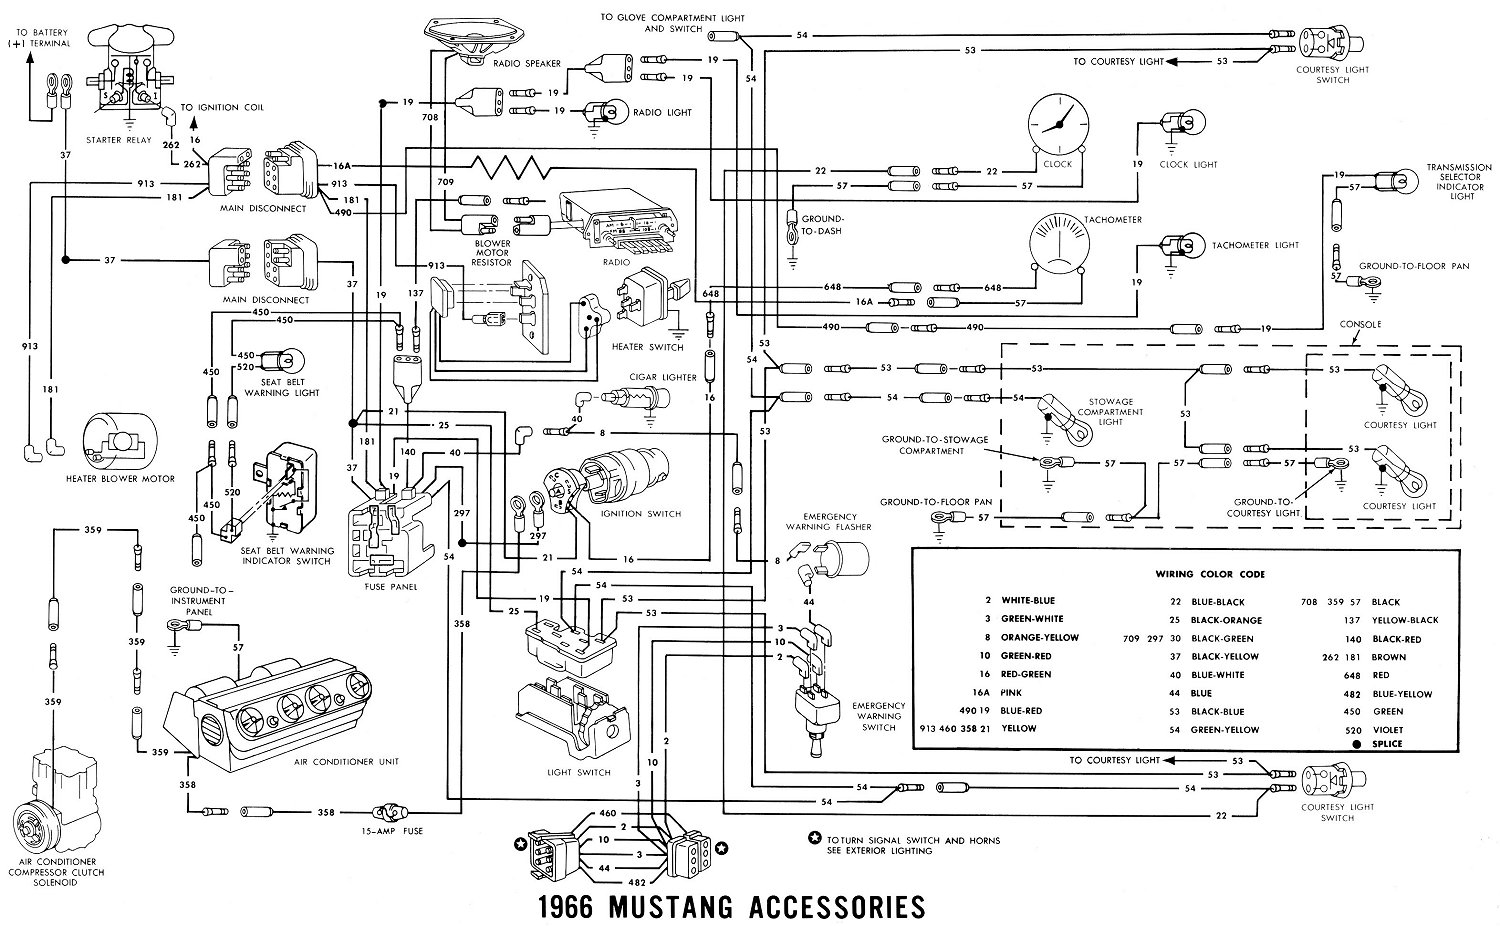 1966 Ford Mustang Accessories Wiring Diagram?wu003d140u0026hu003d140 wiring diagram for 1970 ford mustang readingrat net 2007 Mustang Wiring Diagram at love-stories.co